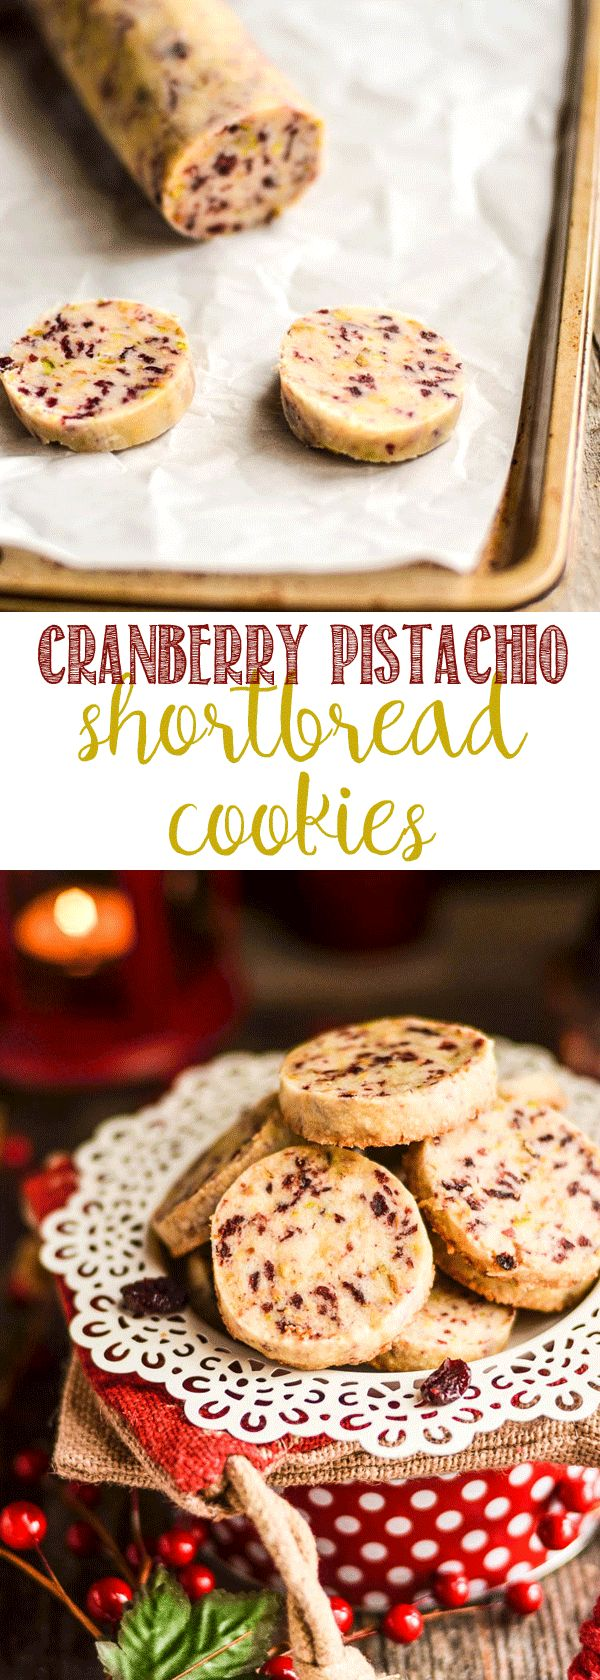 Cranberry Pistachio Shortbread Cookies via @domesticallyspeaking